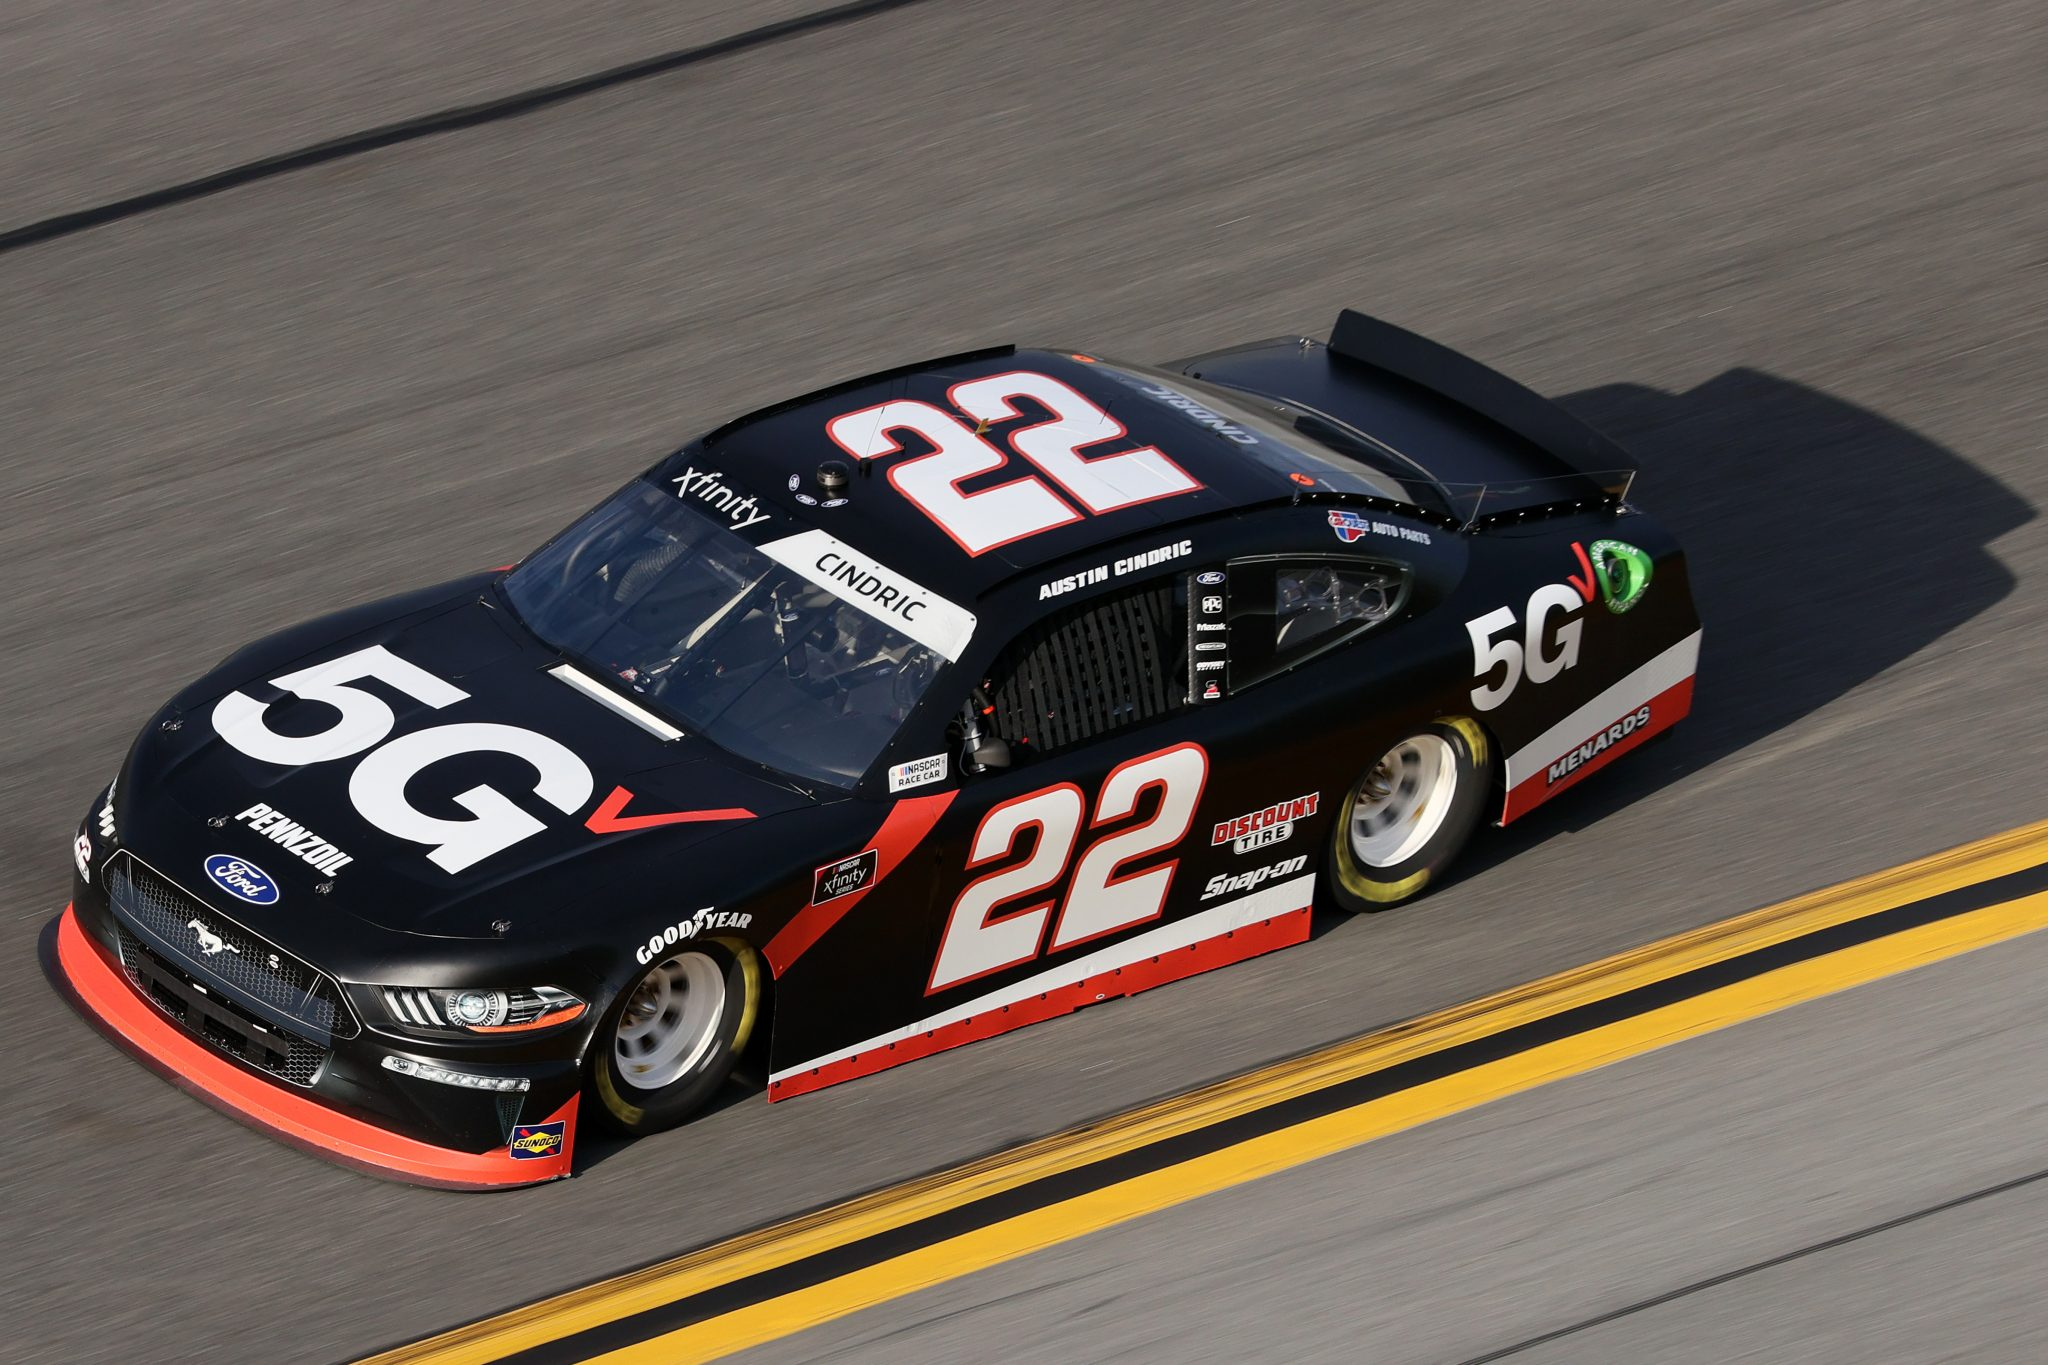 DAYTONA BEACH, FLORIDA - FEBRUARY 12: Austin Cindric, driver of the #22 Verizon 5G Ford, practices for the NASCAR Xfinity Series Beef. It's What's For Dinner. 300 at Daytona International Speedway on February 12, 2021 in Daytona Beach, Florida. (Photo by James Gilbert/Getty Images) | Getty Images